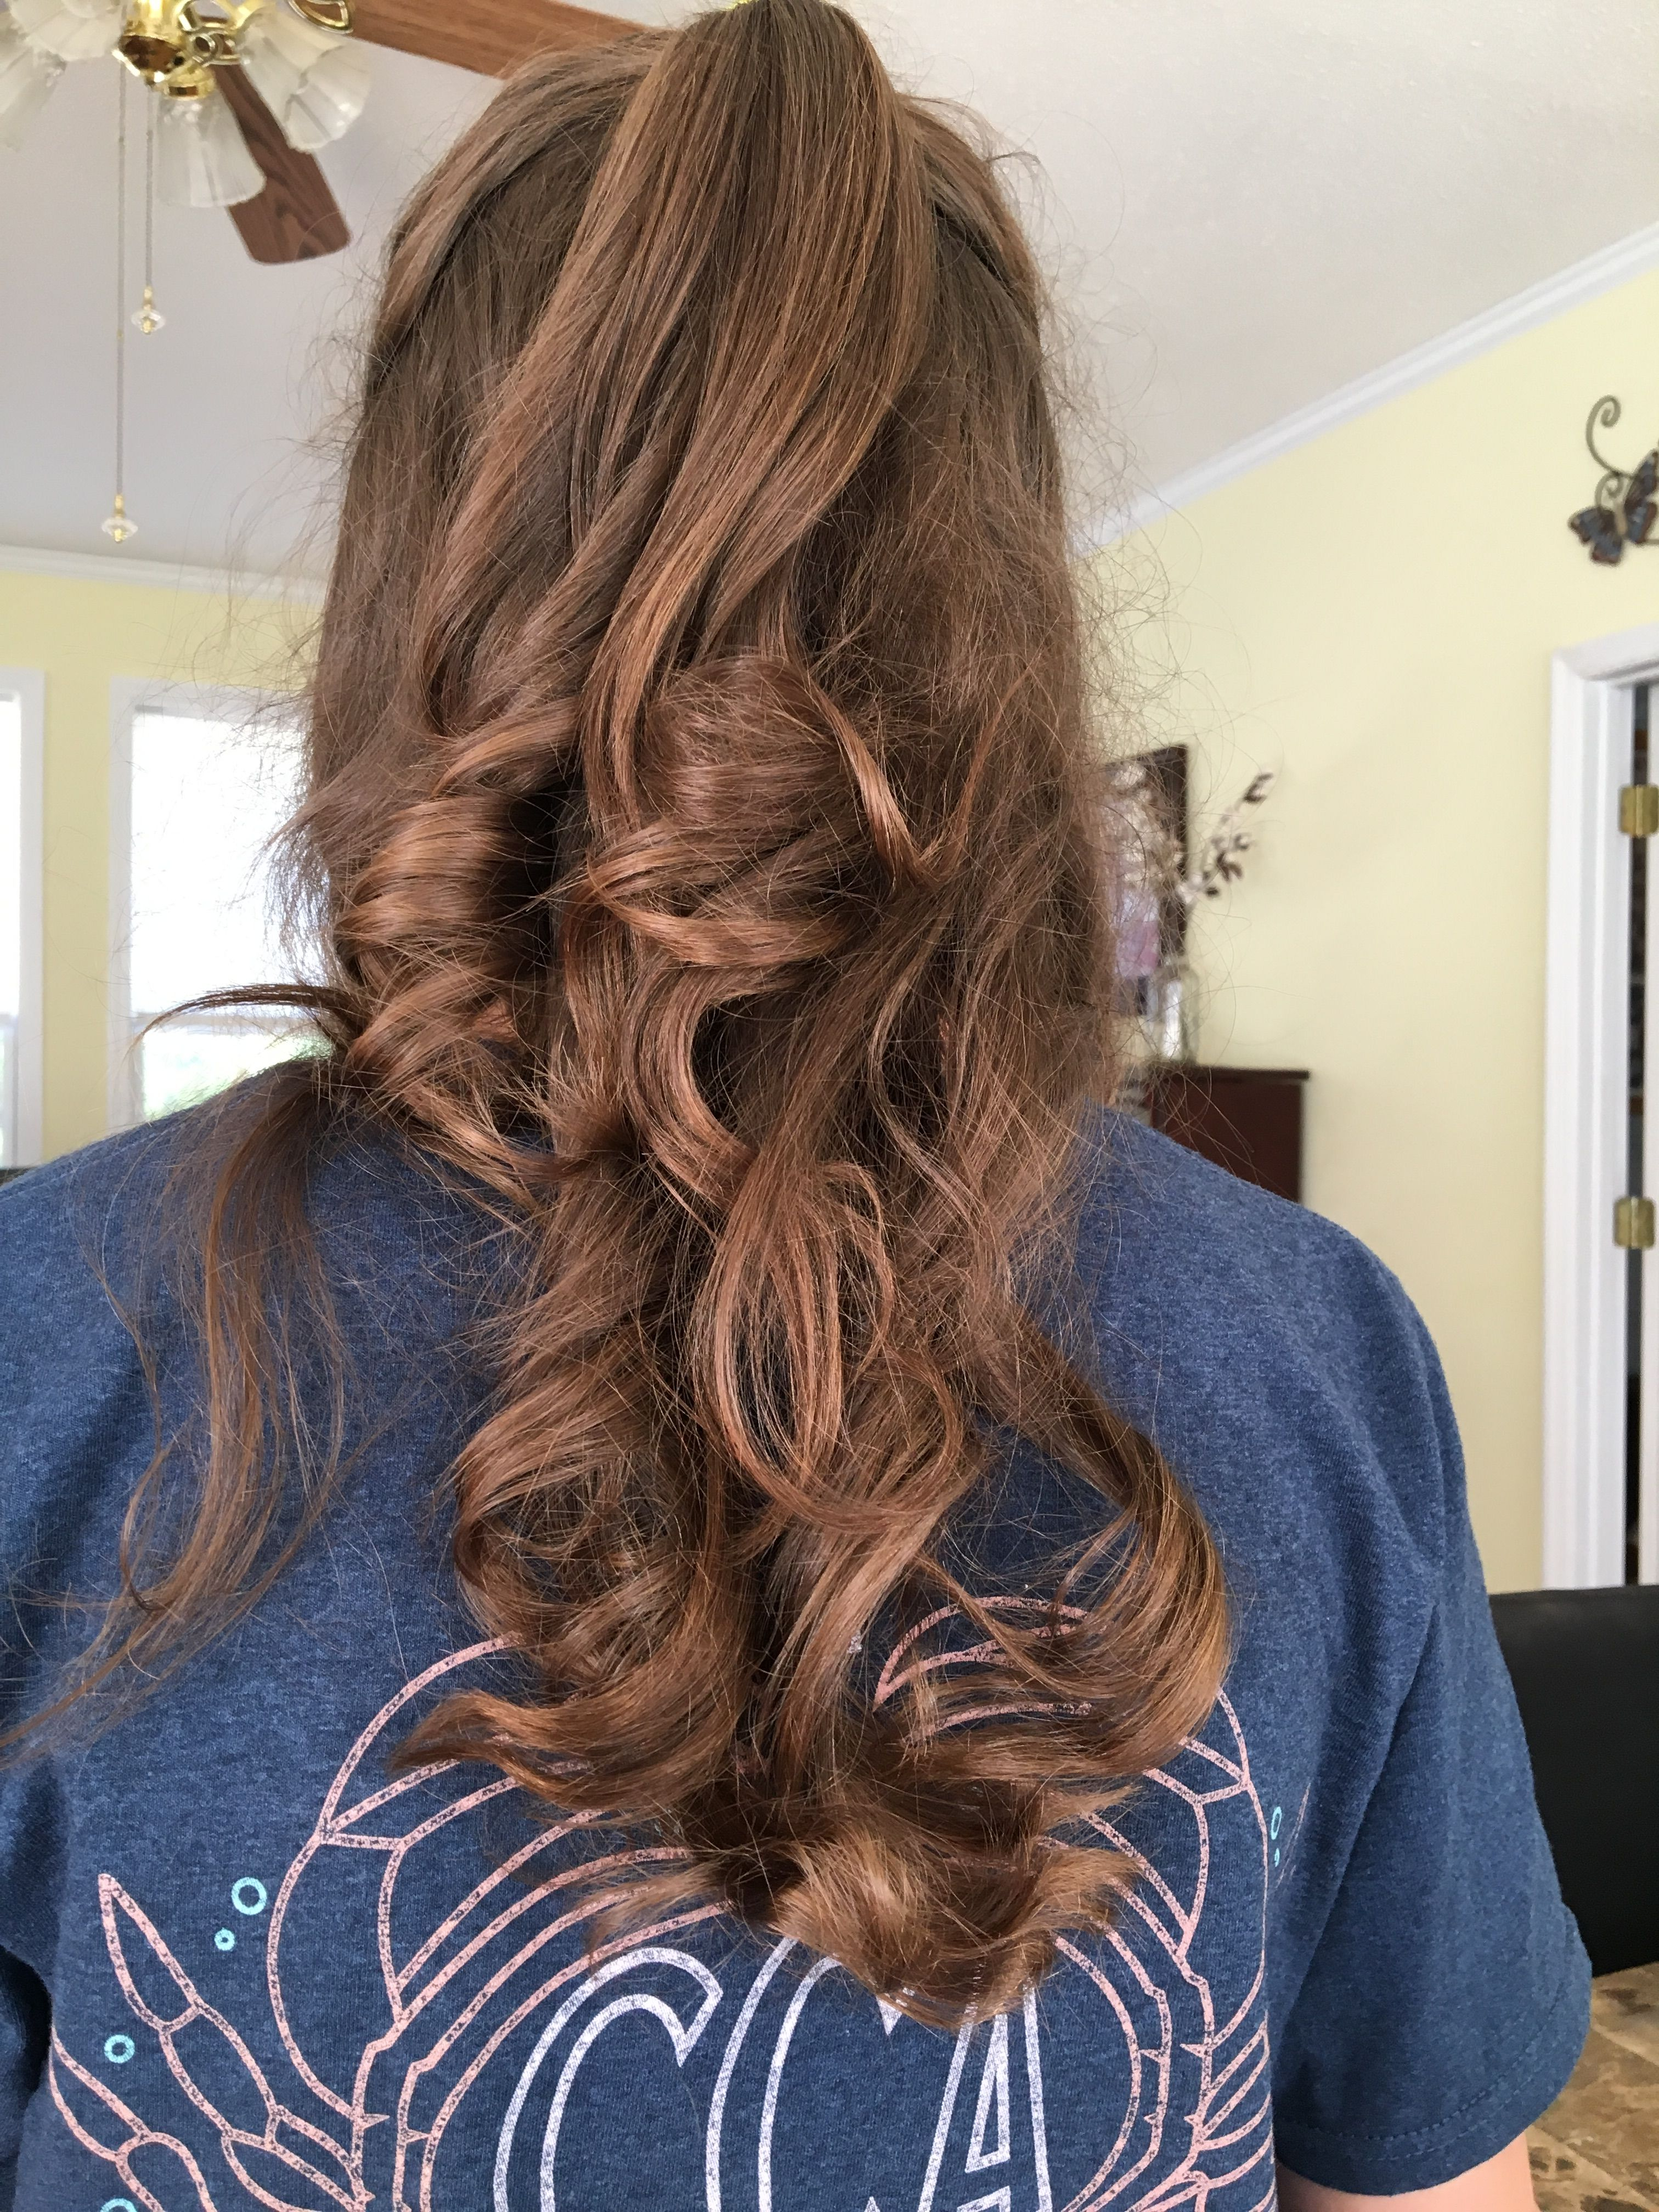 This is a great hairstyle for school or a job interview (With